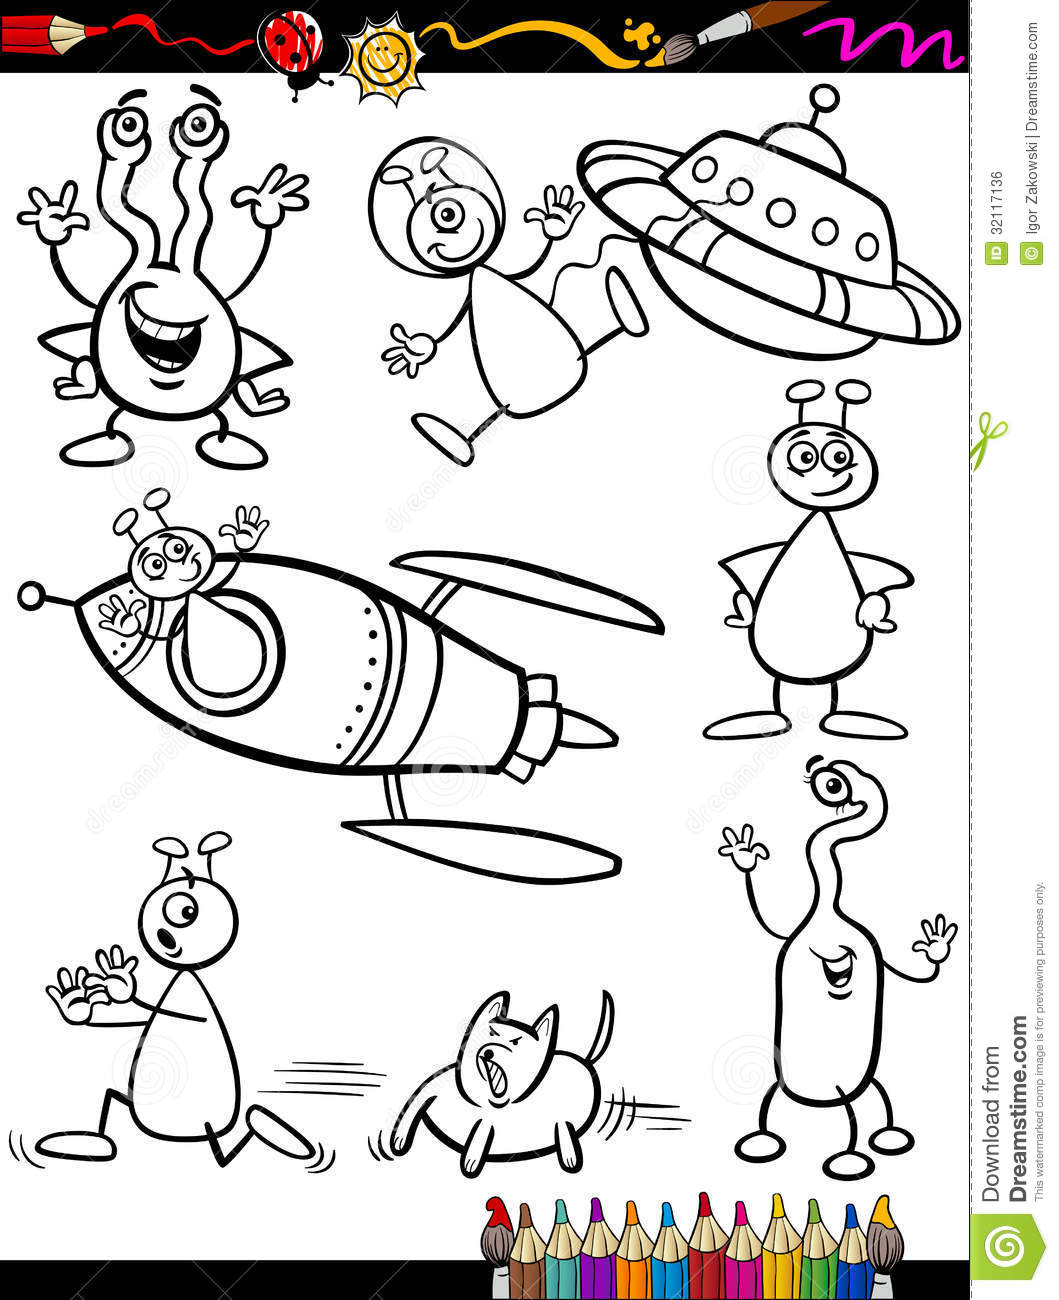 Aliens Cartoon Set For Coloring Book Royalty Free Stock